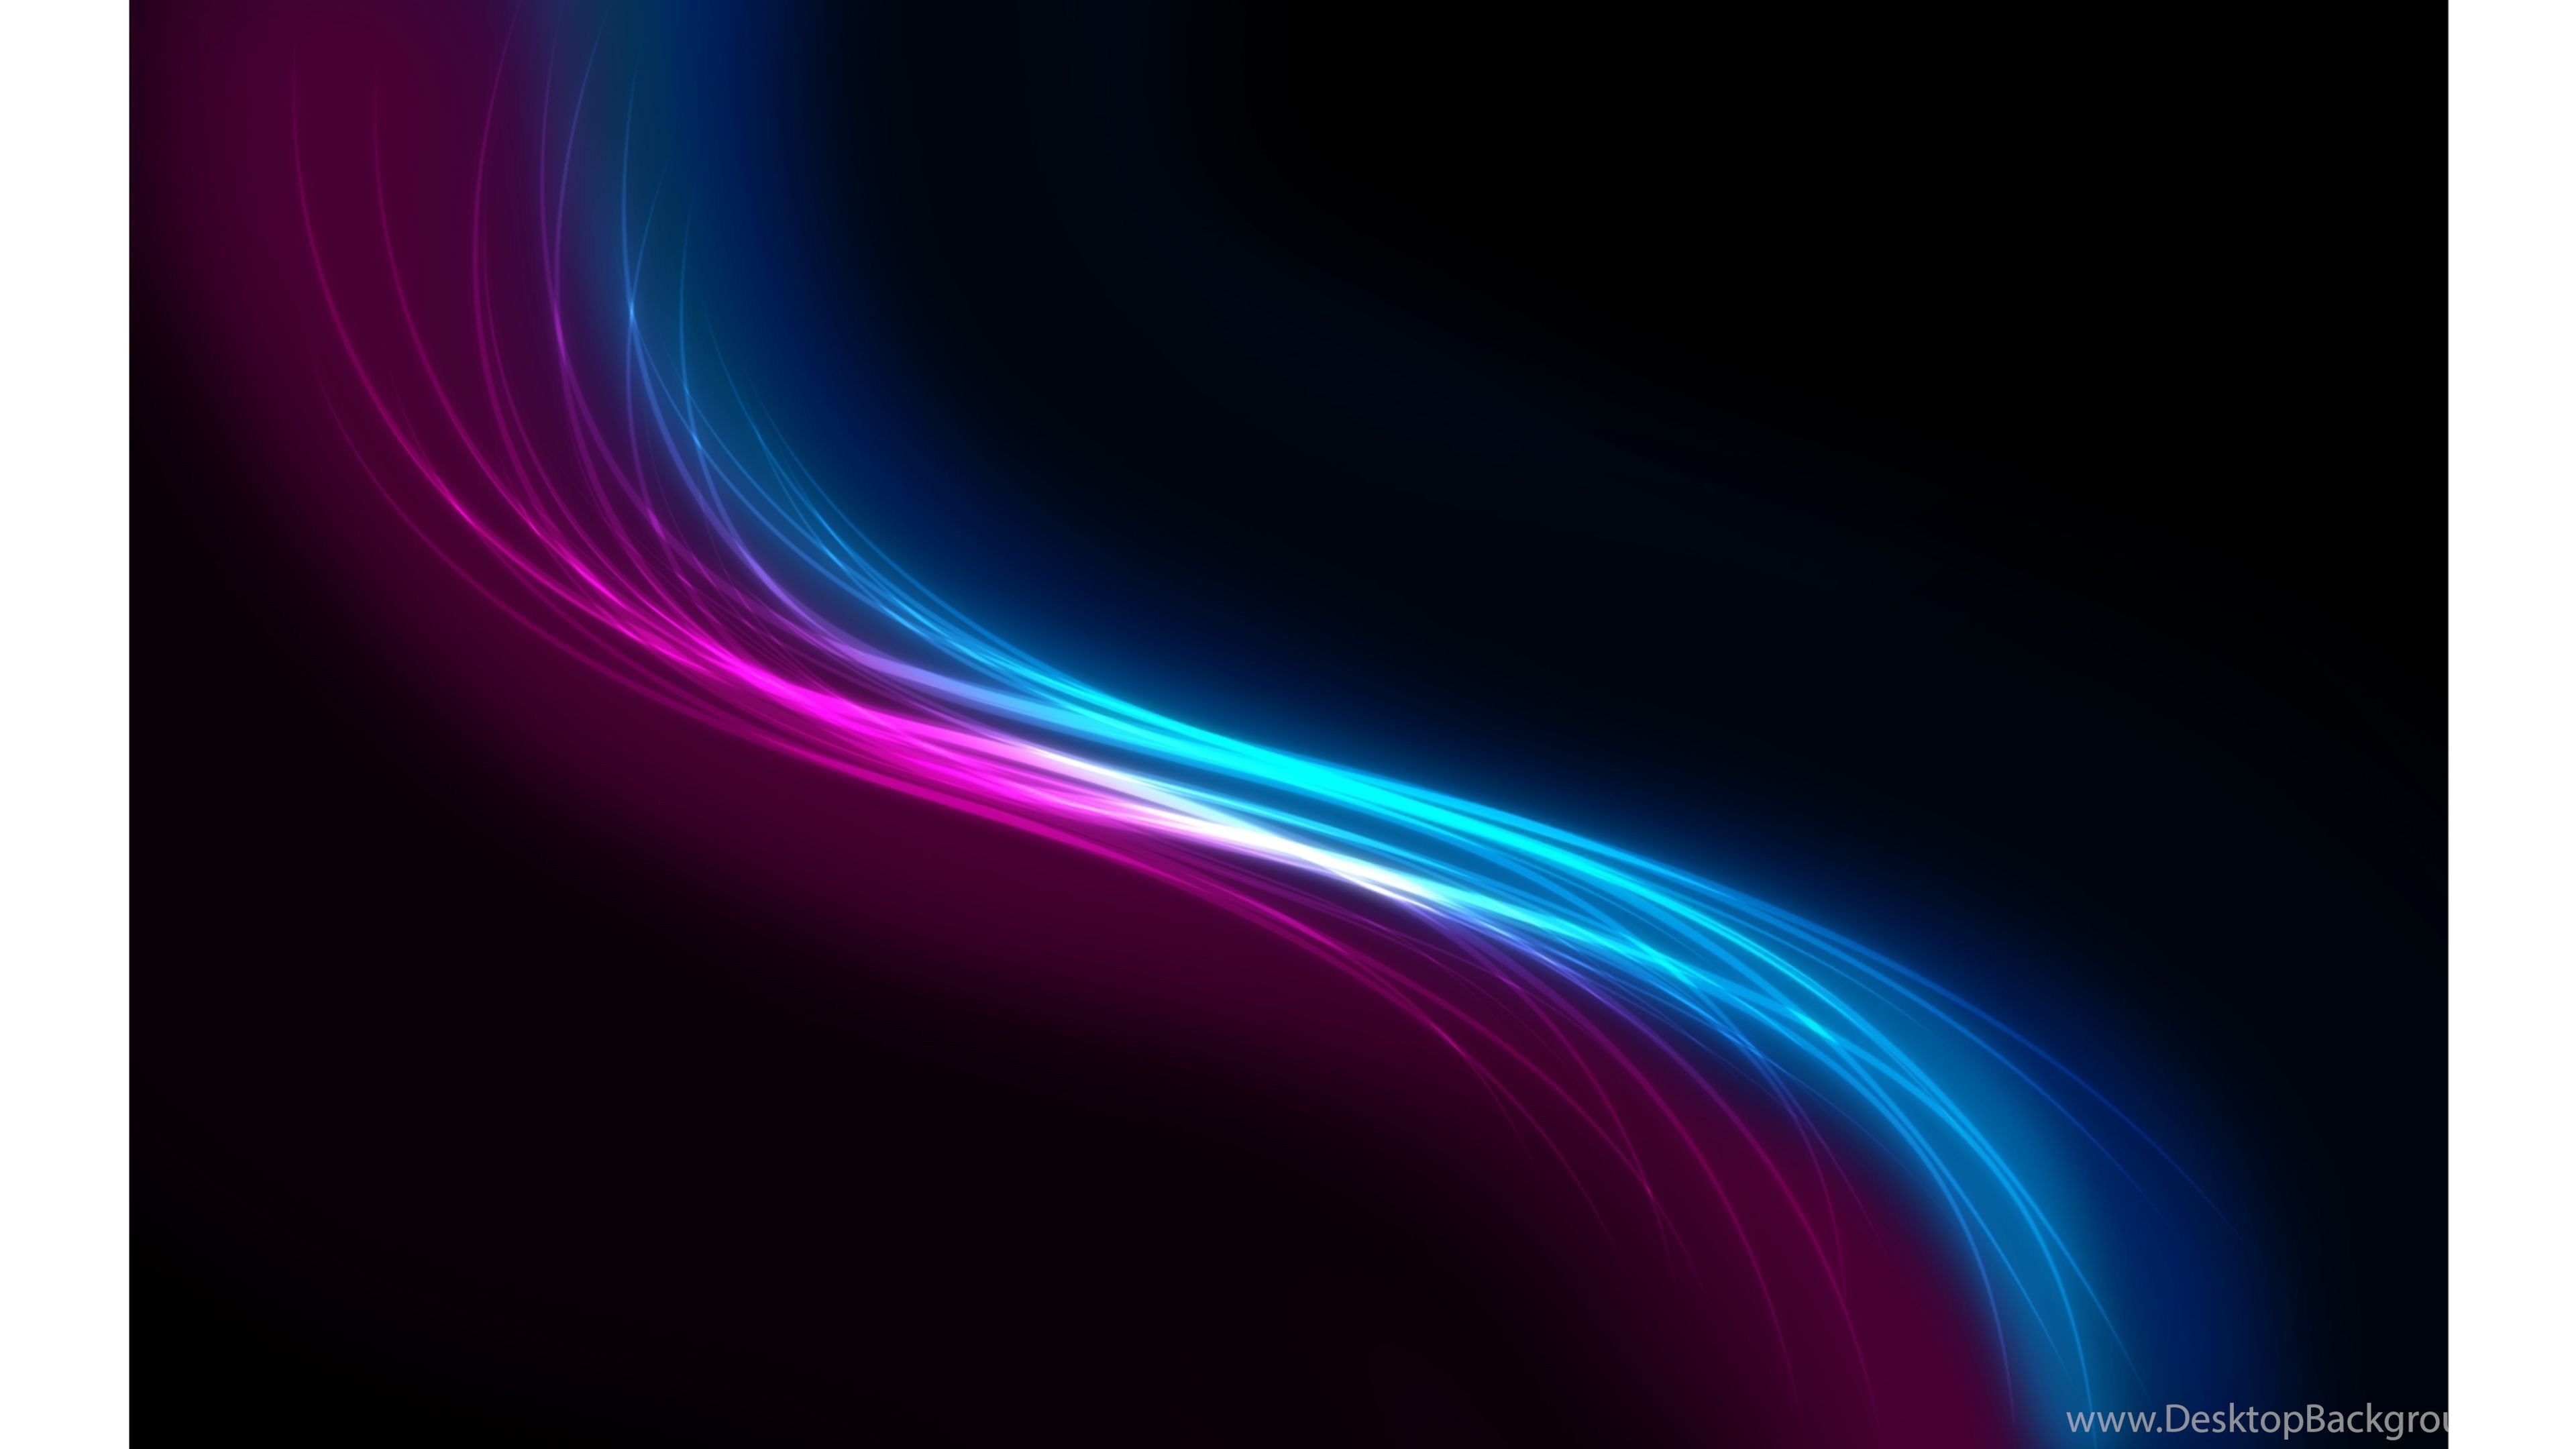 Iphone 7 Plus 4k Wallpaper Best For   Abstract Ultra Hd 8k 3840x2160